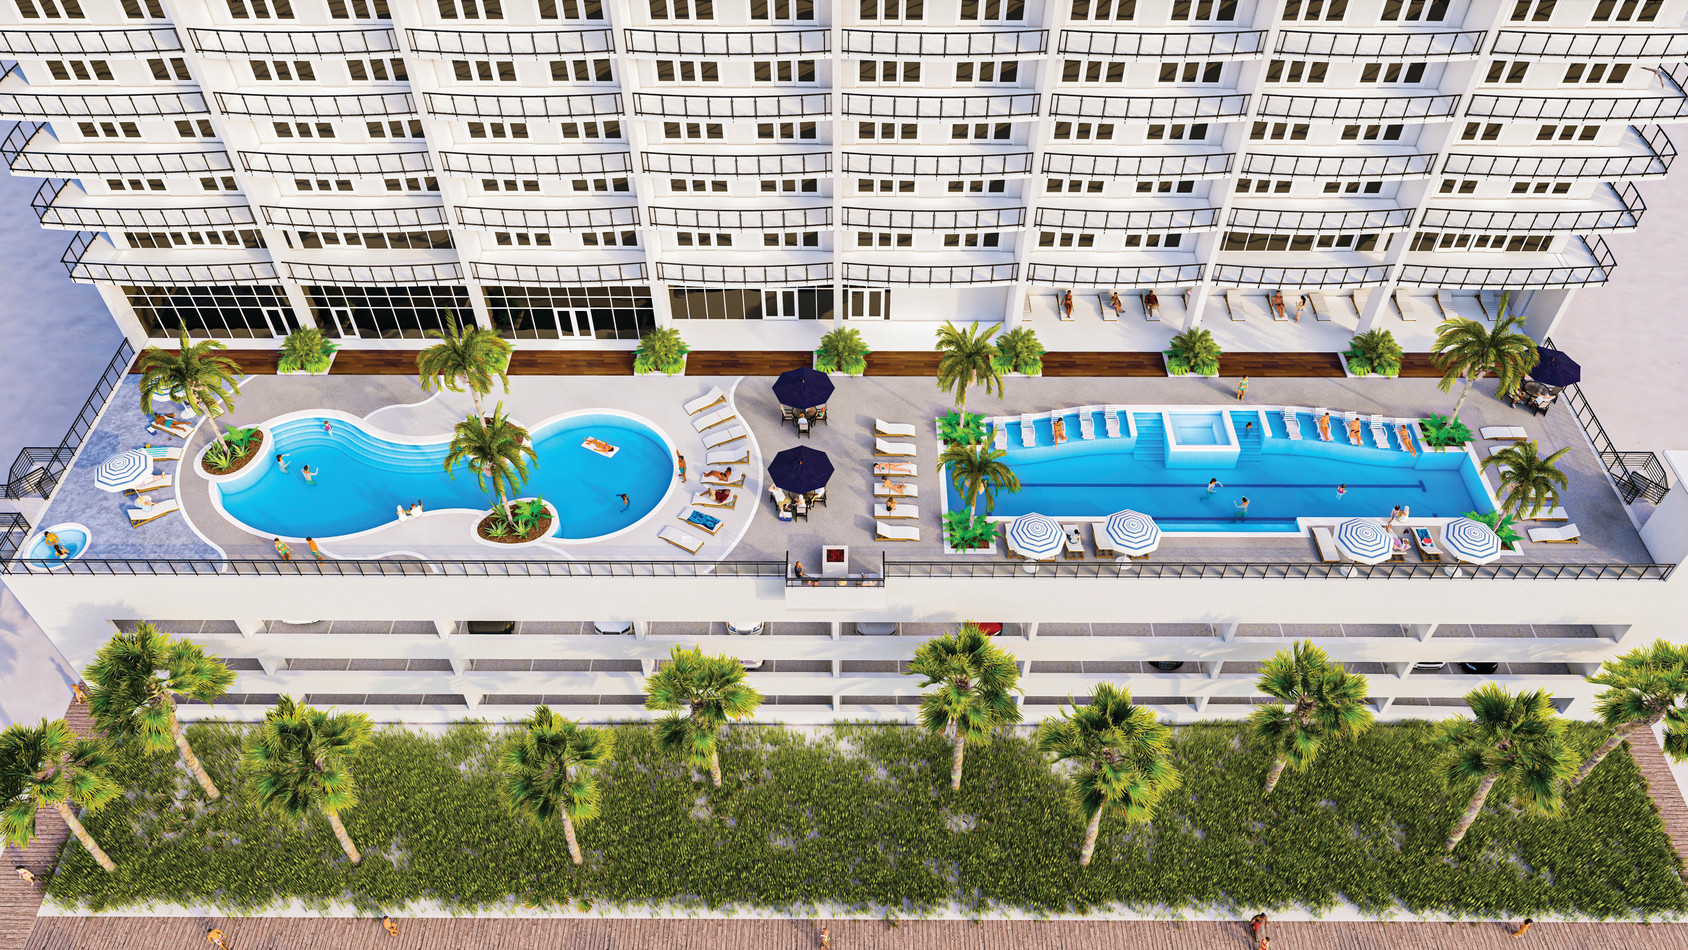 Palace Sands Aerial of Amenity Deck